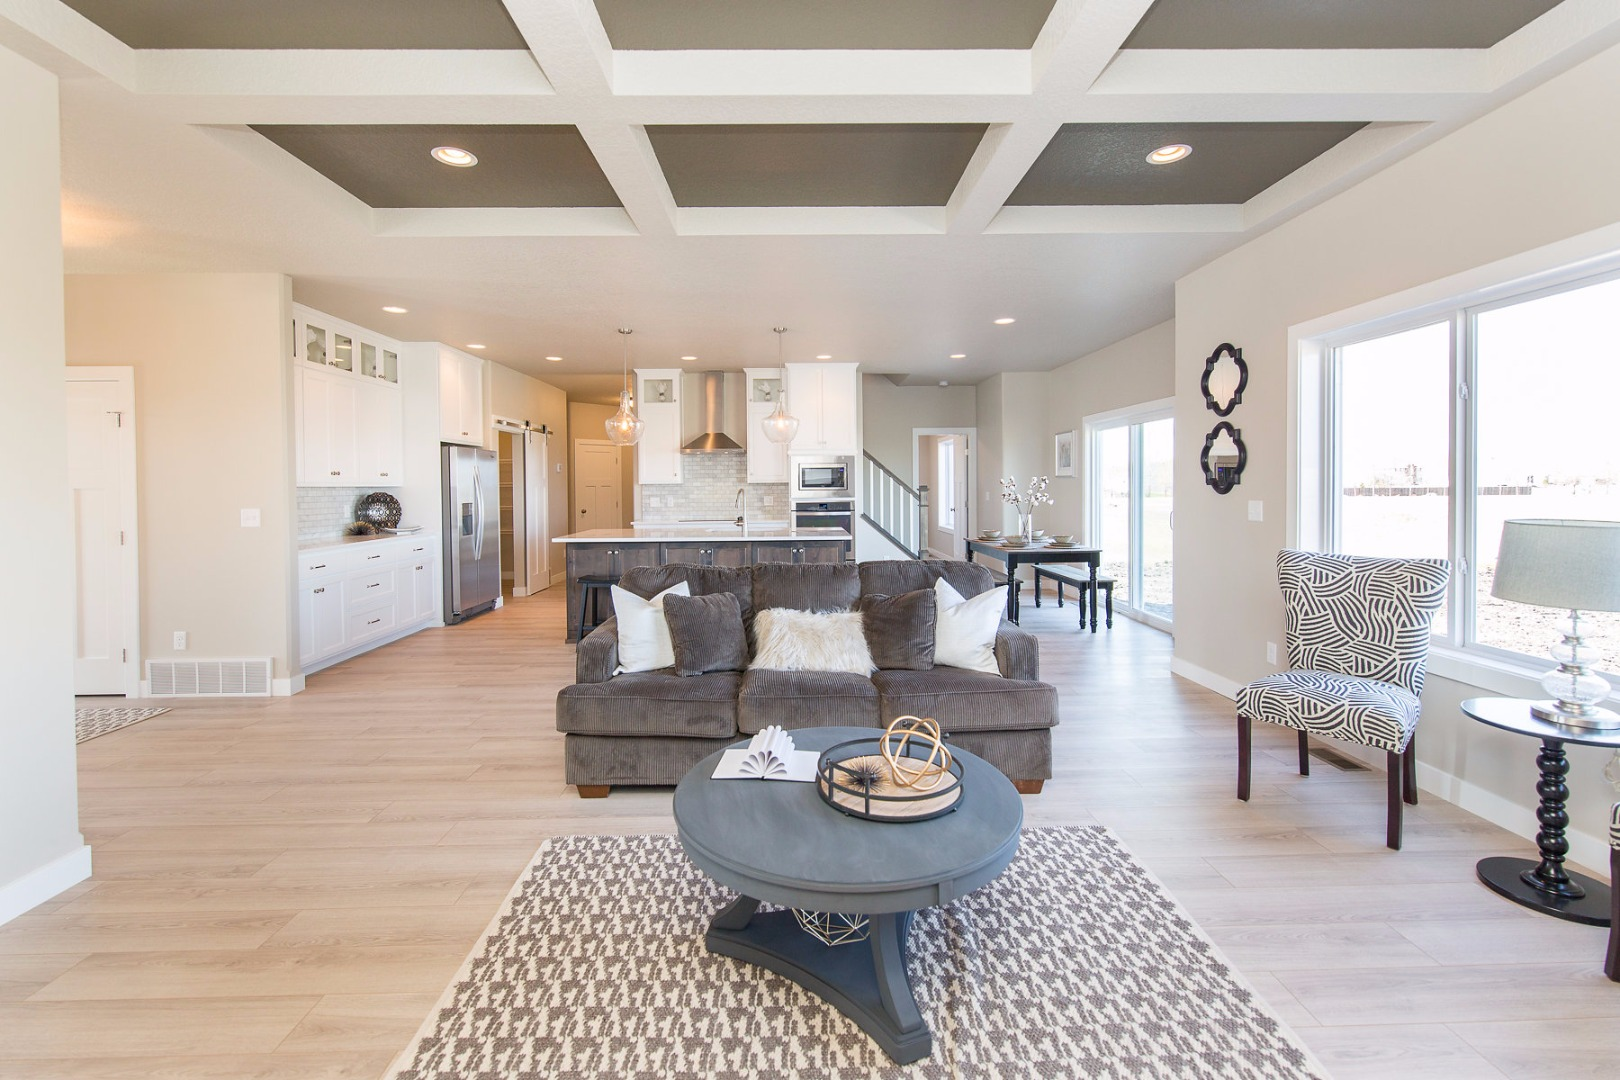 Five Benefits of an Open Floorplan :: Krueger Construction : Custom on the king of queens house floor plan, terra nova house floor plan, isaac bell house floor plan, last man standing house floor plan, blue bloods house floor plan, two and a half men house floor plan, the fosters house floor plan, bates motel house floor plan, raising hope house floor plan, san francisco house floor plan, ghost whisperer house floor plan, keeping up appearances house floor plan, fairbanks house floor plan, modern family house floor plan, greek house floor plan, being human house floor plan, north by northwest house floor plan, something's gotta give house floor plan, family matters house floor plan, the sopranos house floor plan,